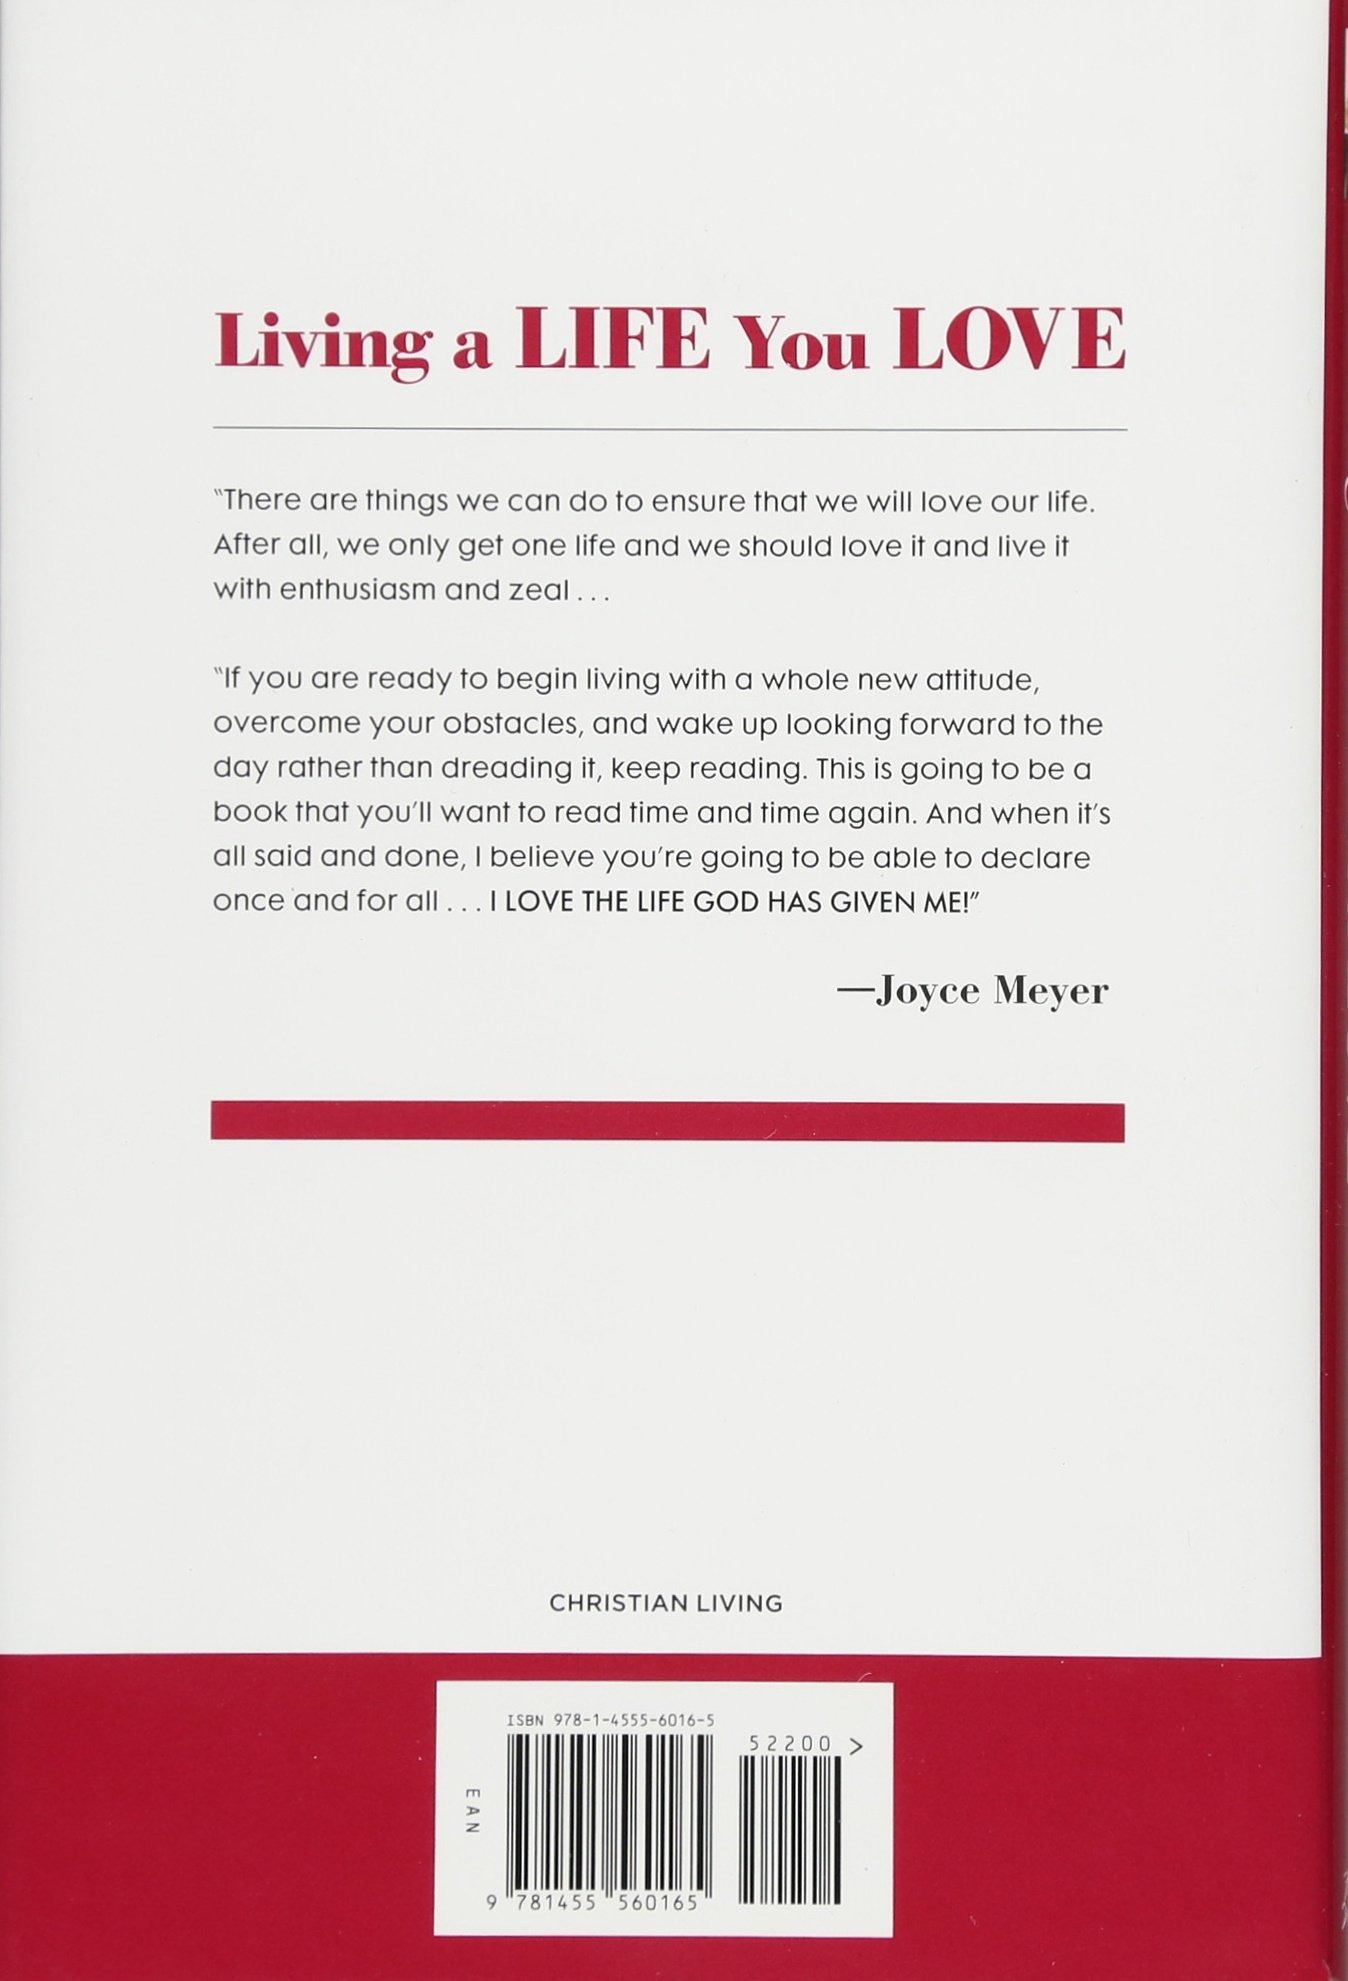 Living a life you love embracing the adventure of being led by the living a life you love embracing the adventure of being led by the holy spirit joyce meyer 9781455560165 amazon books altavistaventures Image collections